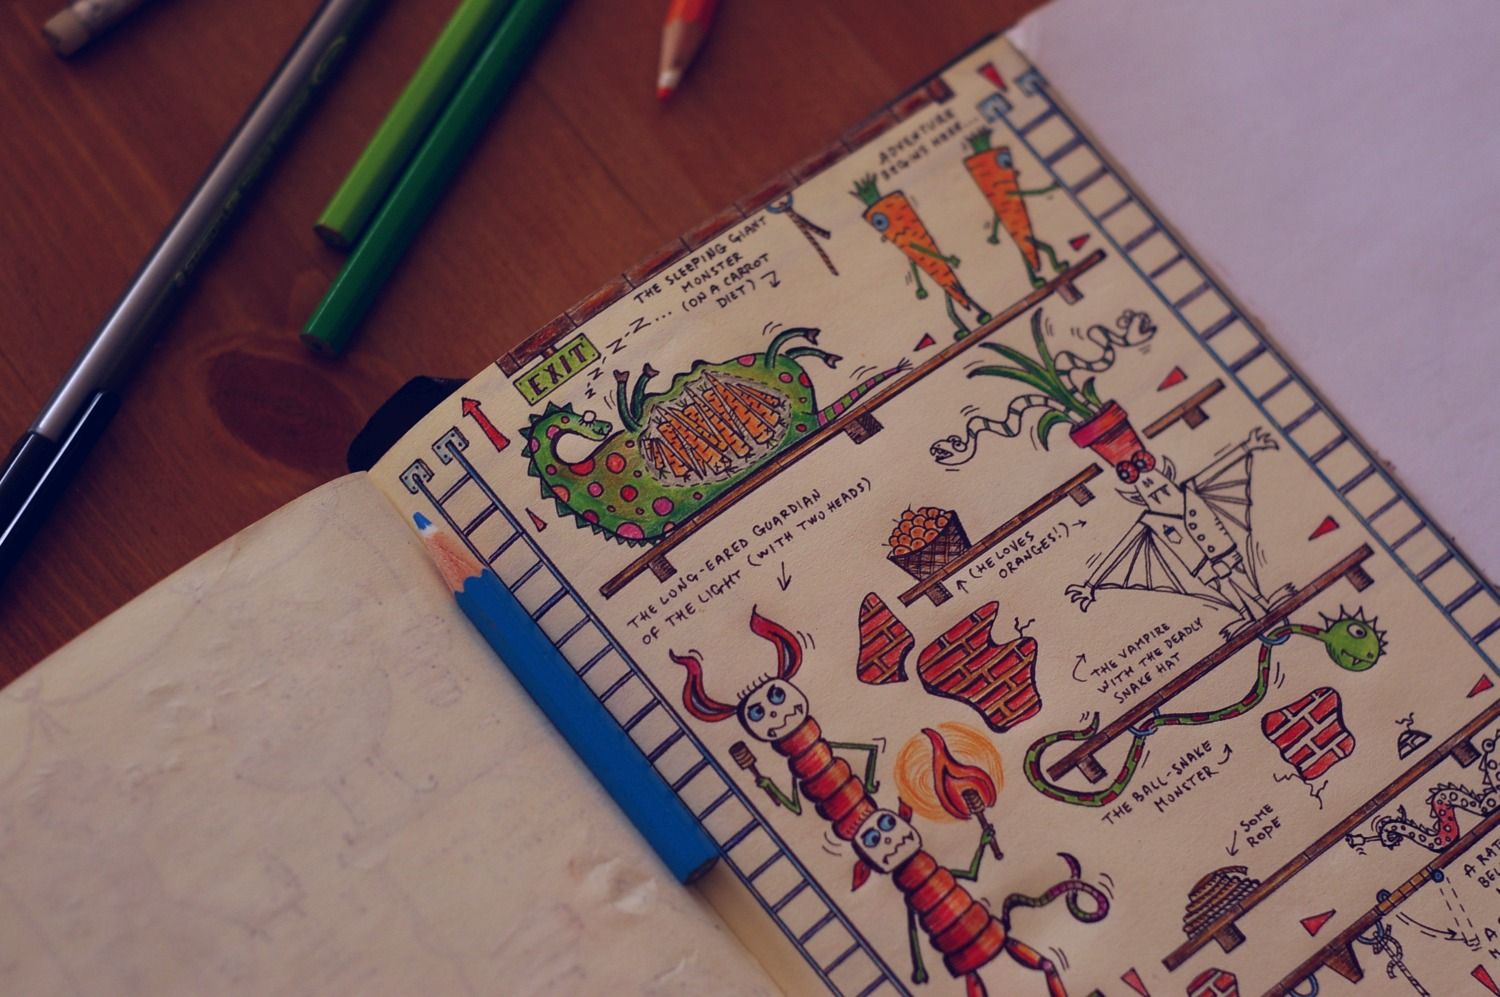 Monsters and Carrots: The Labyrinths